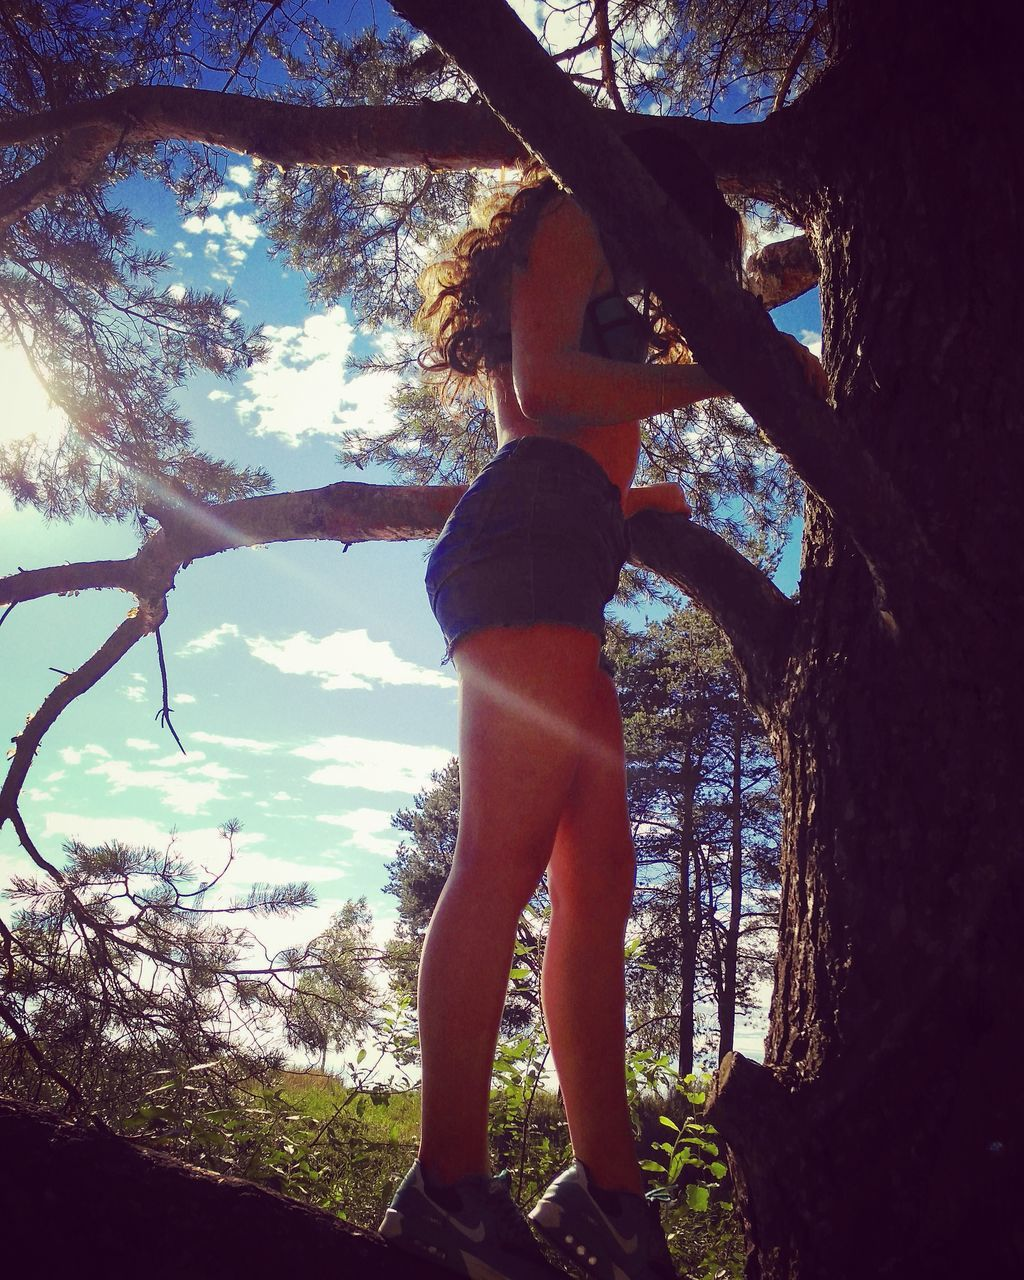 tree, tree trunk, branch, one person, standing, rear view, real people, nature, day, growth, full length, leisure activity, outdoors, sky, beauty in nature, low angle view, lifestyles, scenics, bare tree, young women, rope swing, young adult, people